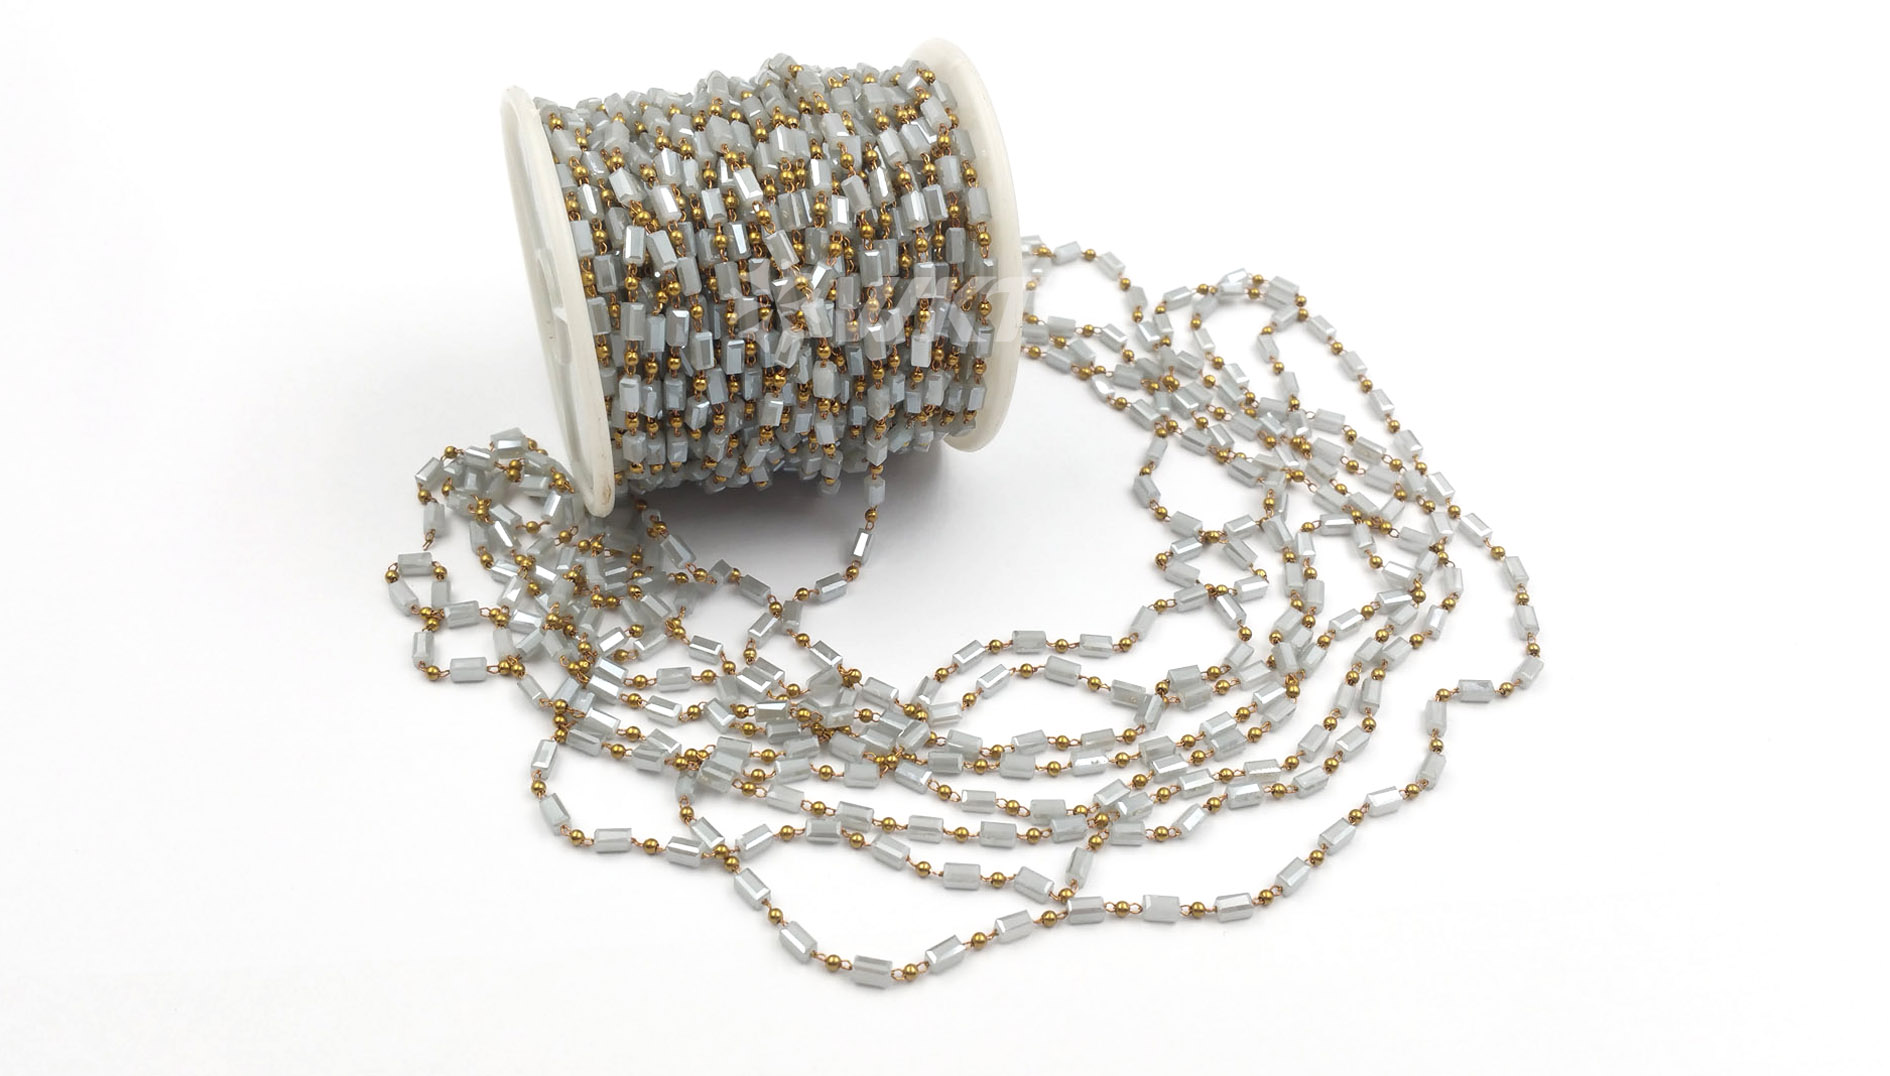 WT-RBC078 Fashionable Elegant Grey Jewelry Chain for All to Wear and Various Colors to Choose brass crystal beads chain